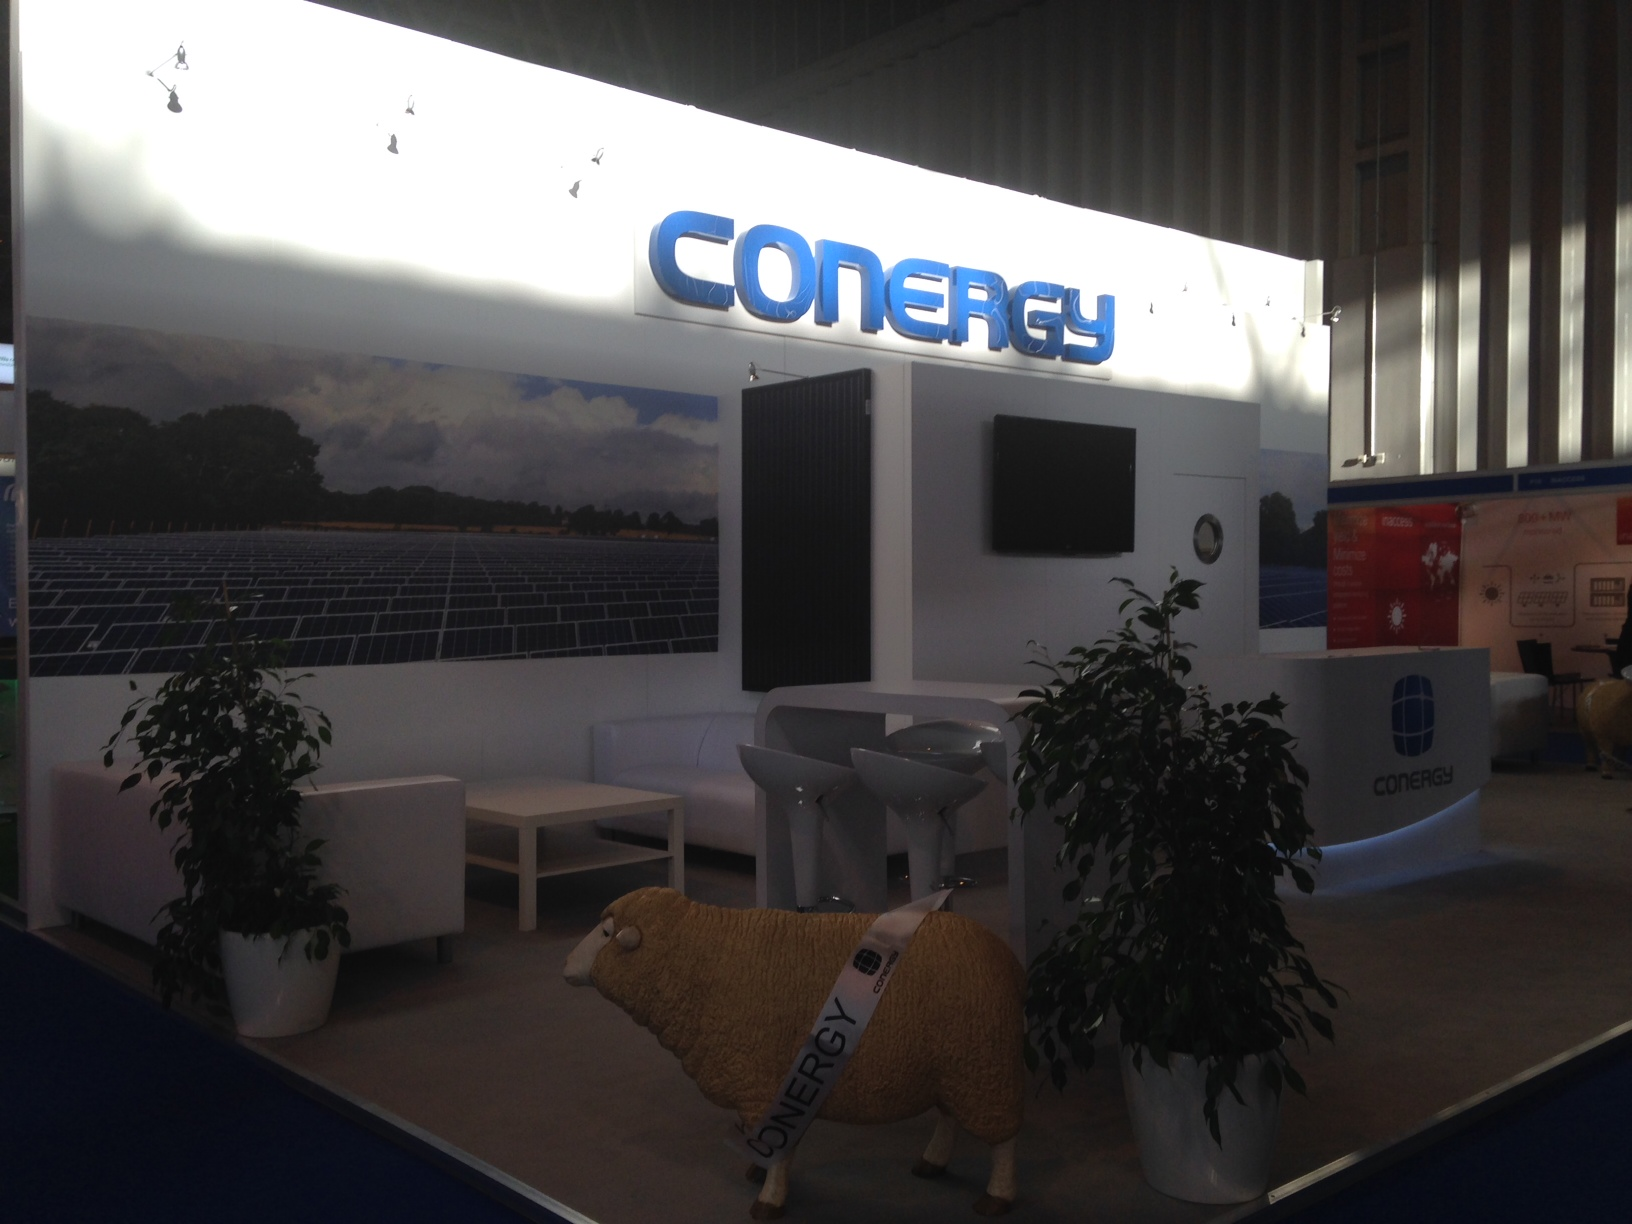 Conergy is sending 10 US students to the COP21 talks in Paris.